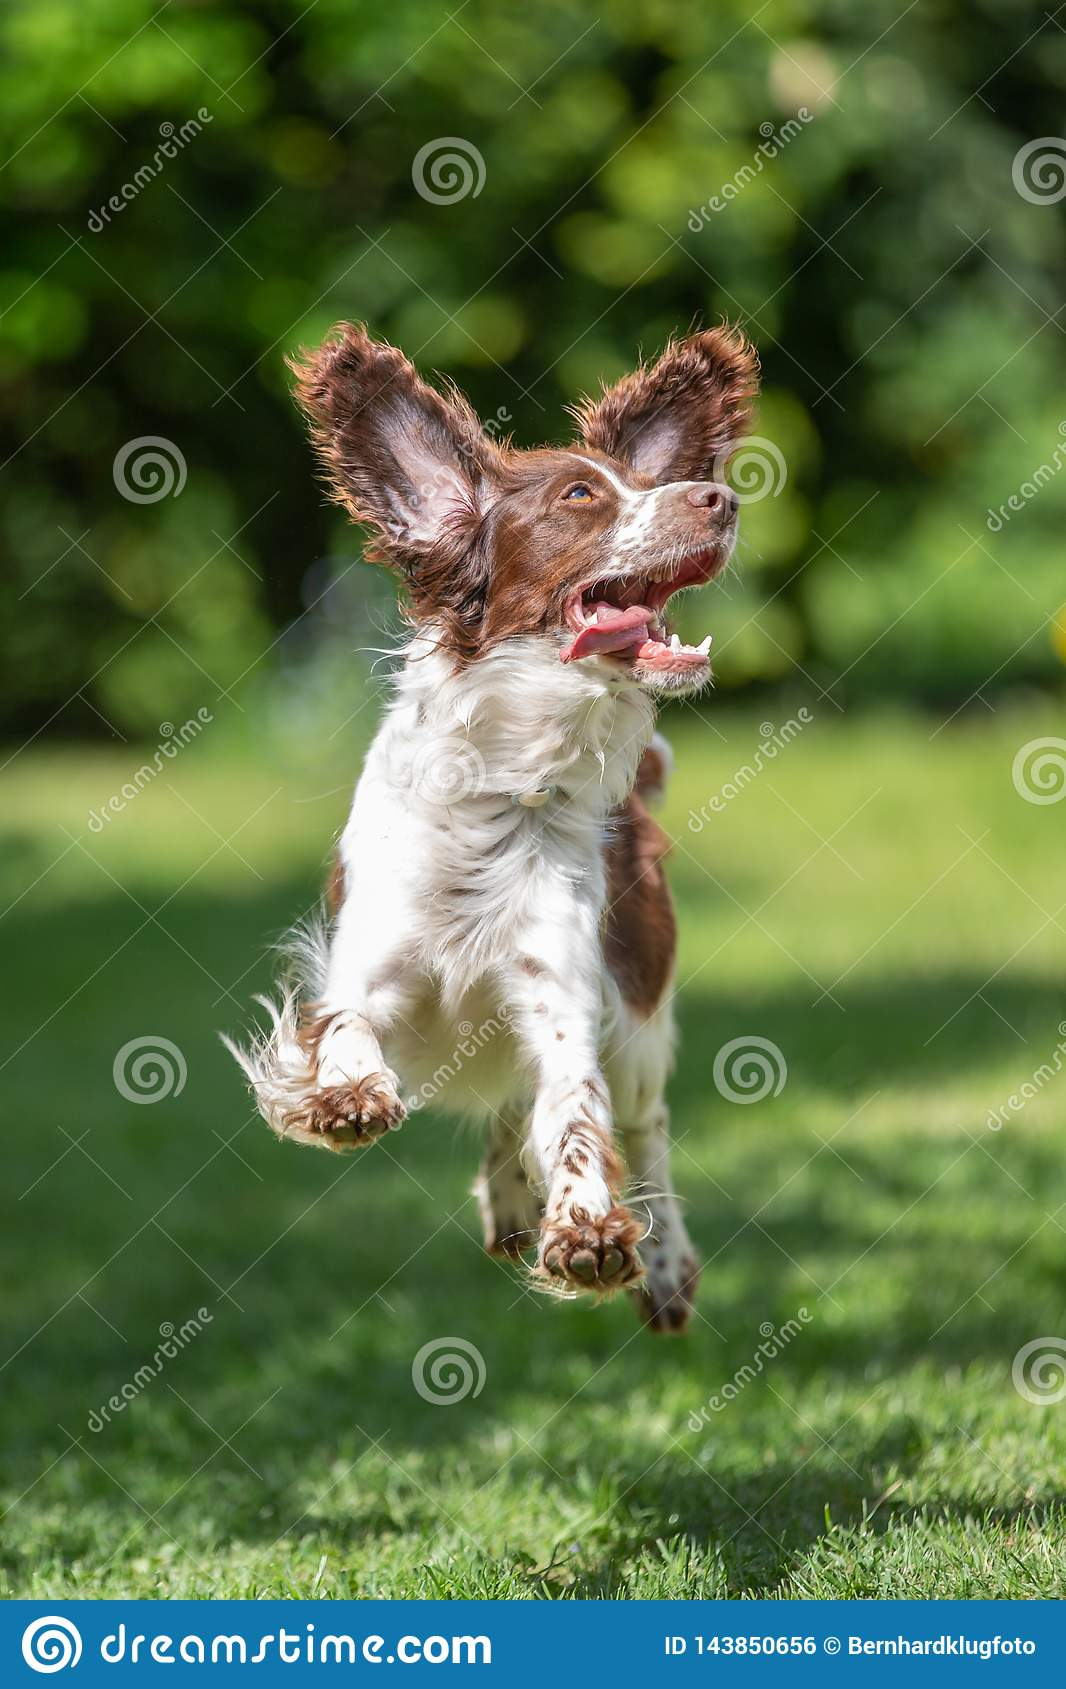 Young Springer Spaniel Jumping for Joy with Flying Ears Stock Photo - Image  of funny, excitement: 143850656